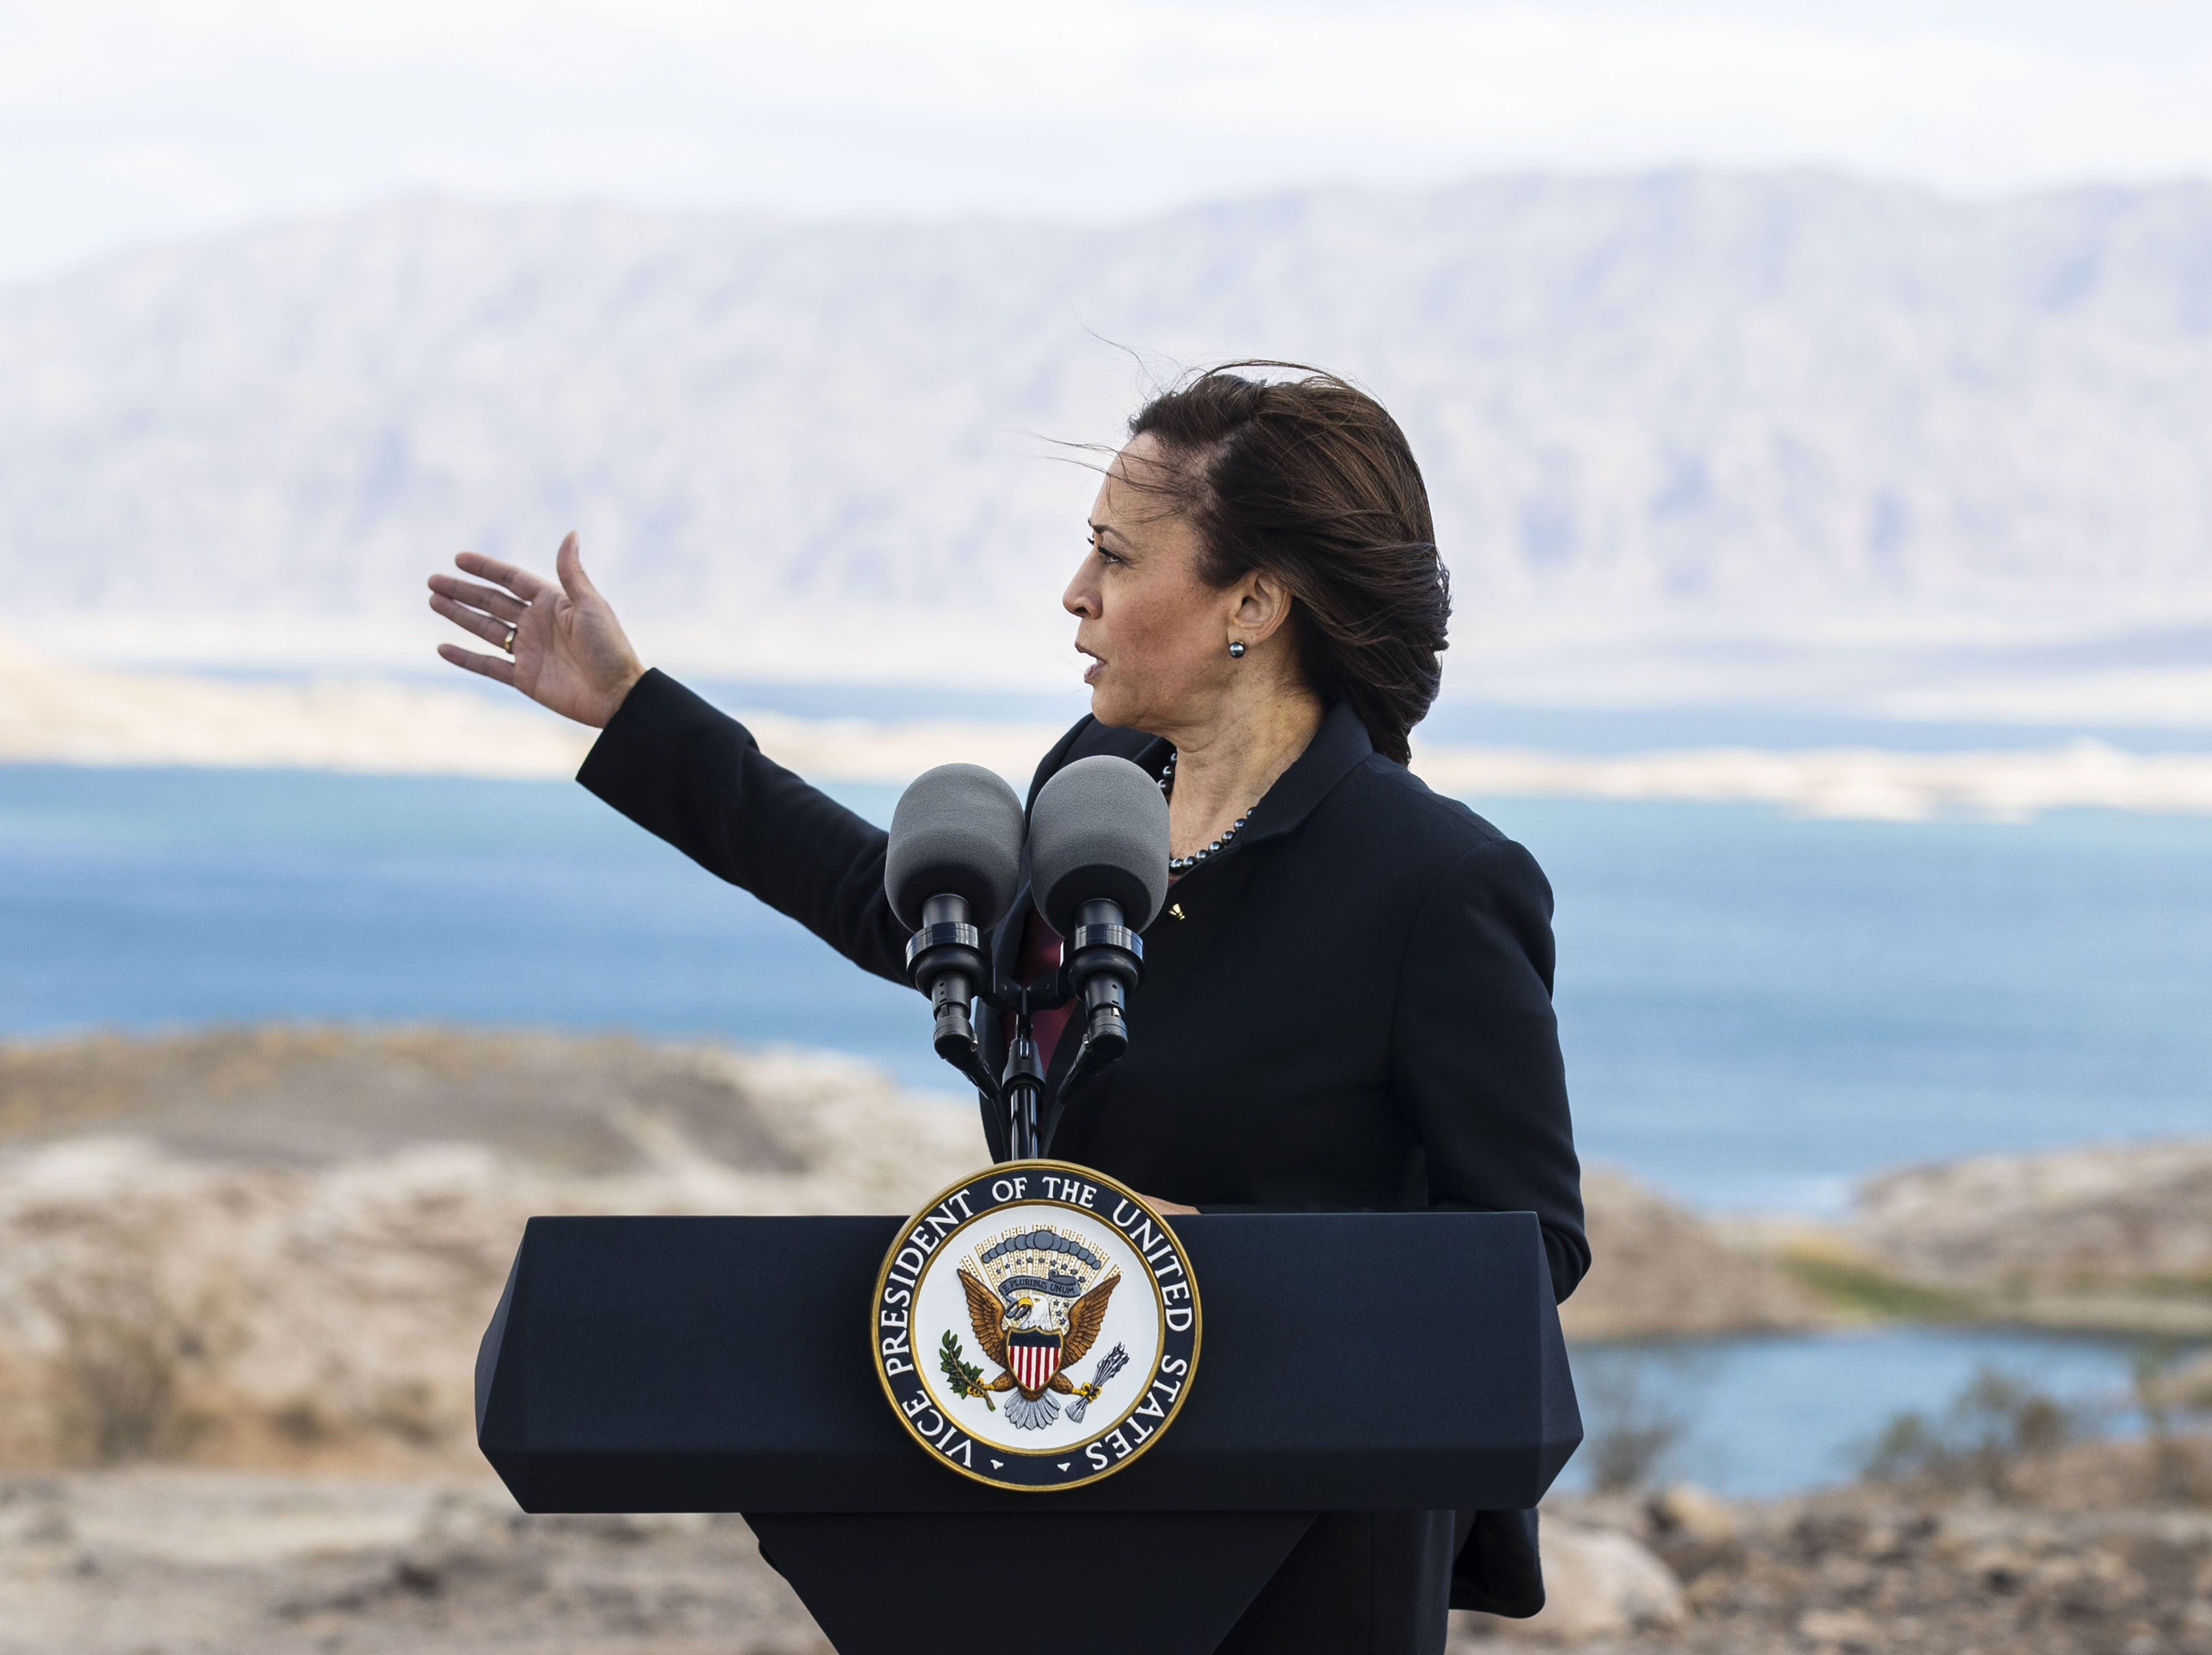 Vice President Kamala Harris addresses climate change after visiting the Sunset Overlook at Lake Mead National Recreation Area.